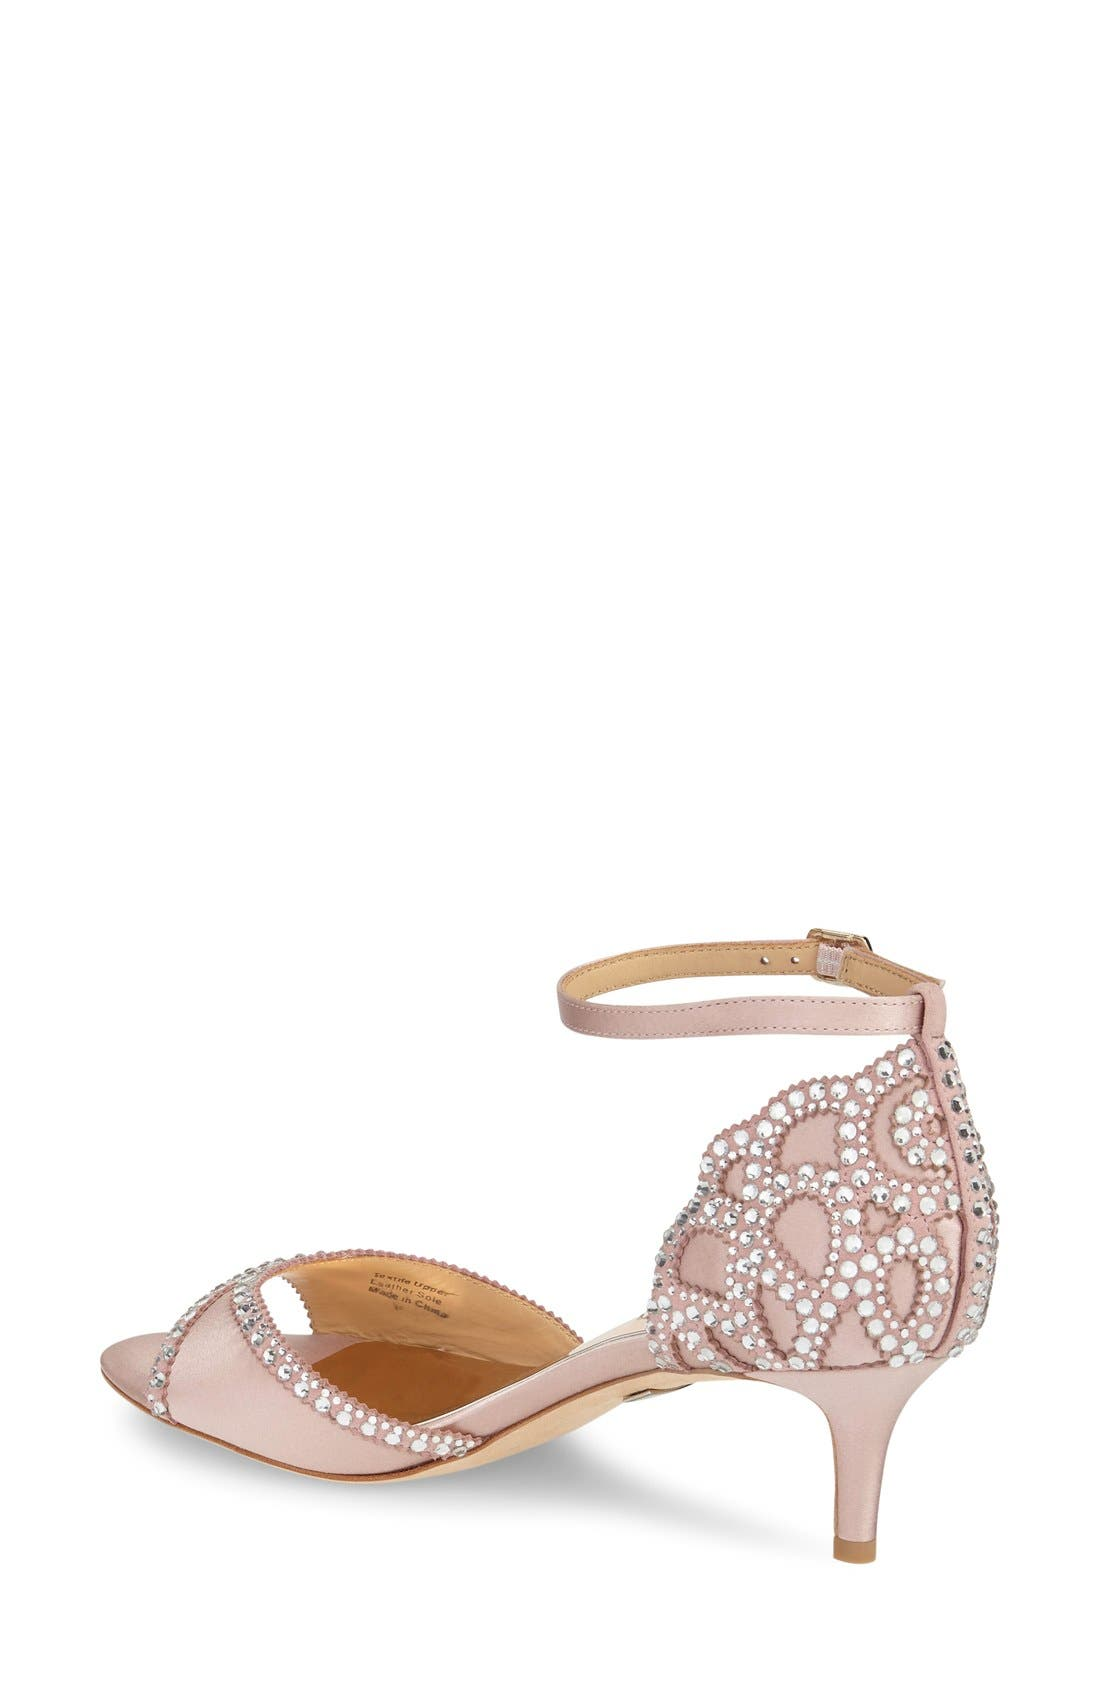 'Gillian' Crystal Embellished d'Orsay Sandal,                             Alternate thumbnail 3, color,                             BLUSH SATIN